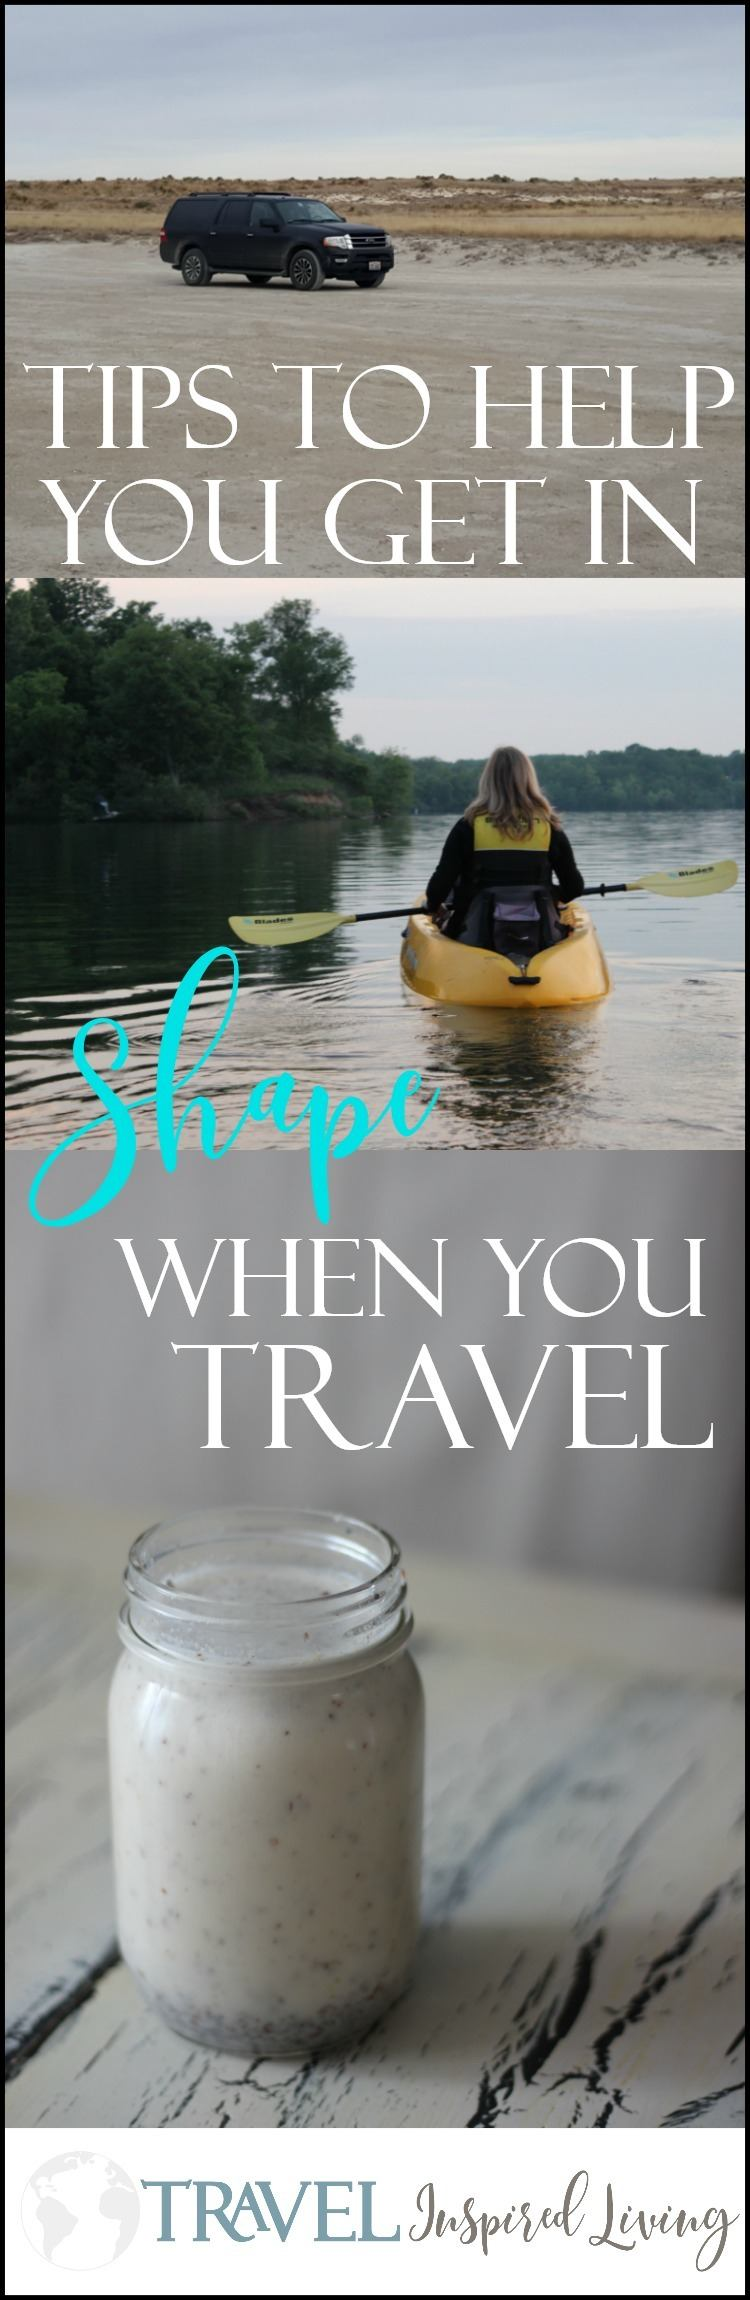 Tips to help you get in shape when you travel a lot